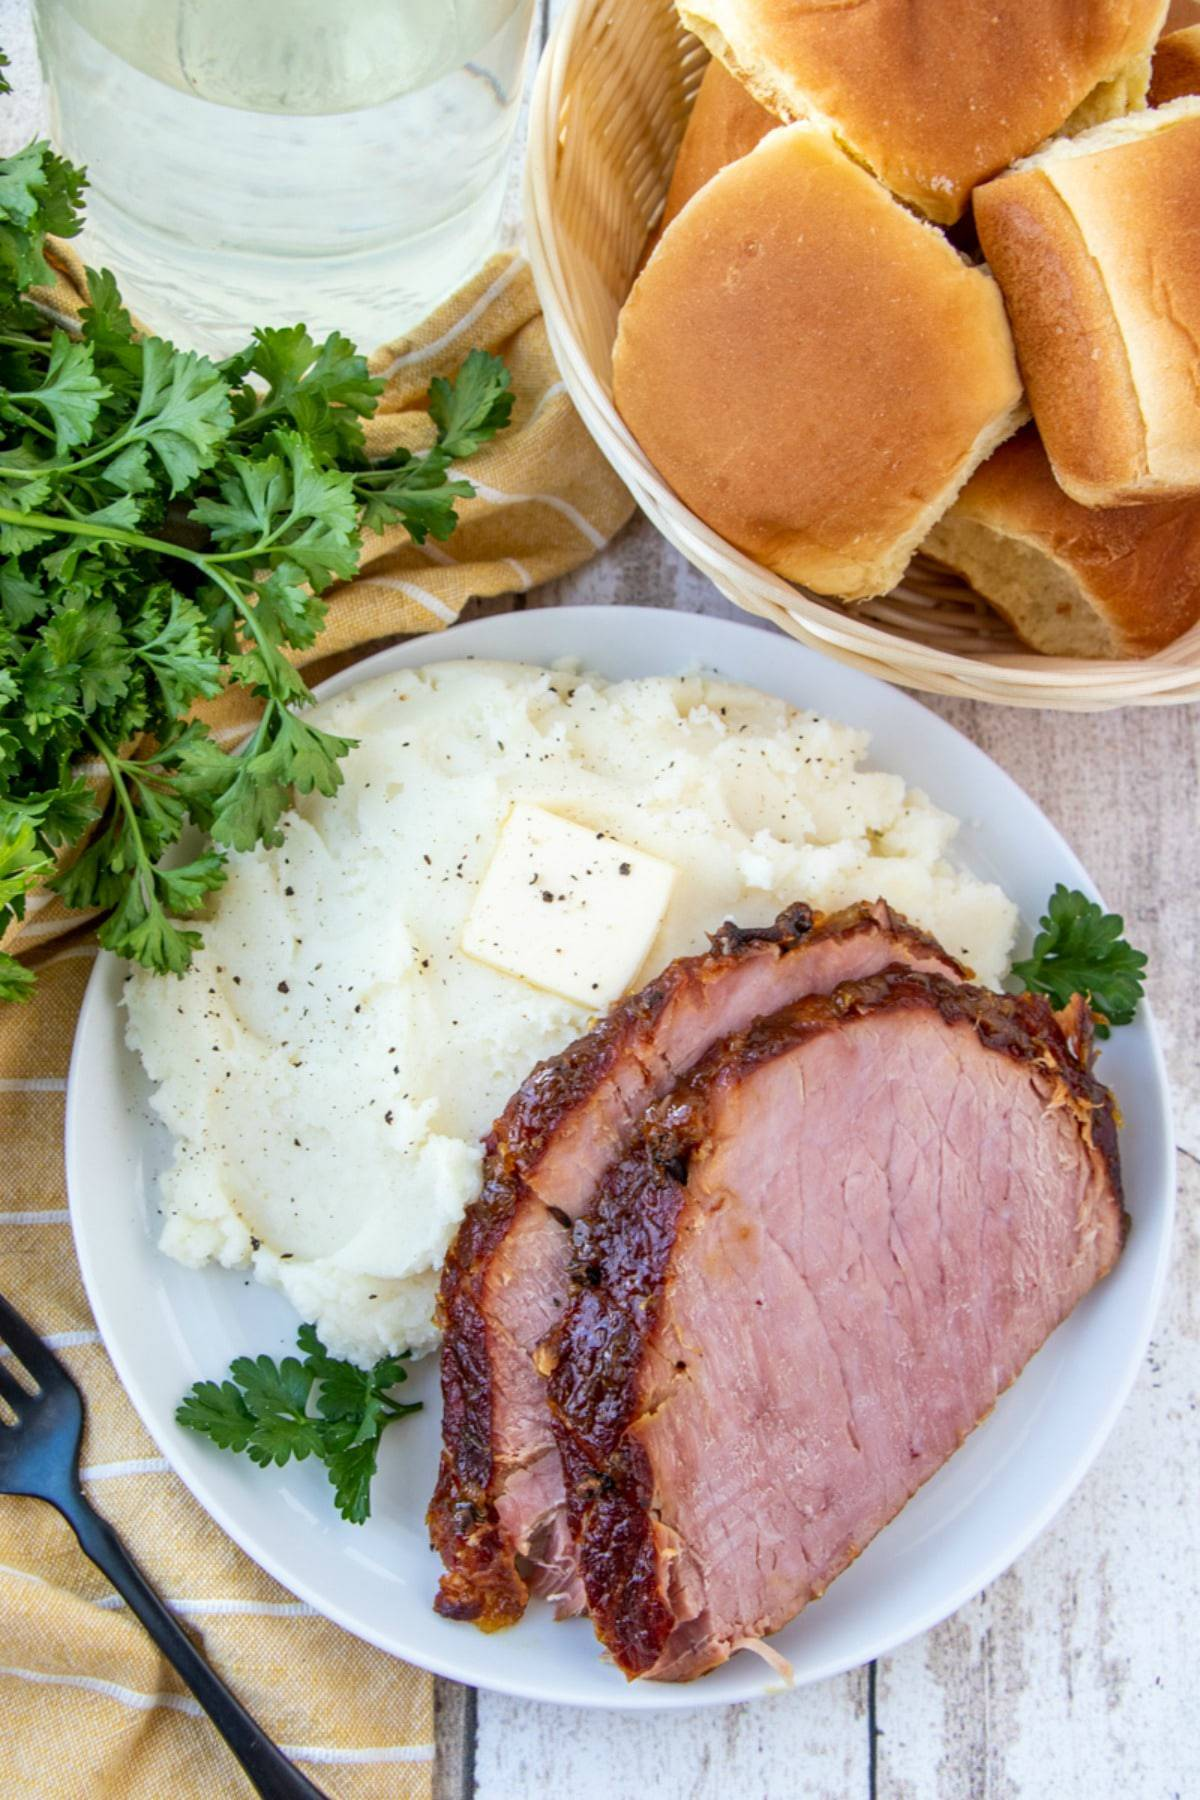 top view of pineapple-glazed ham slices with mashed potatoes on a white plate